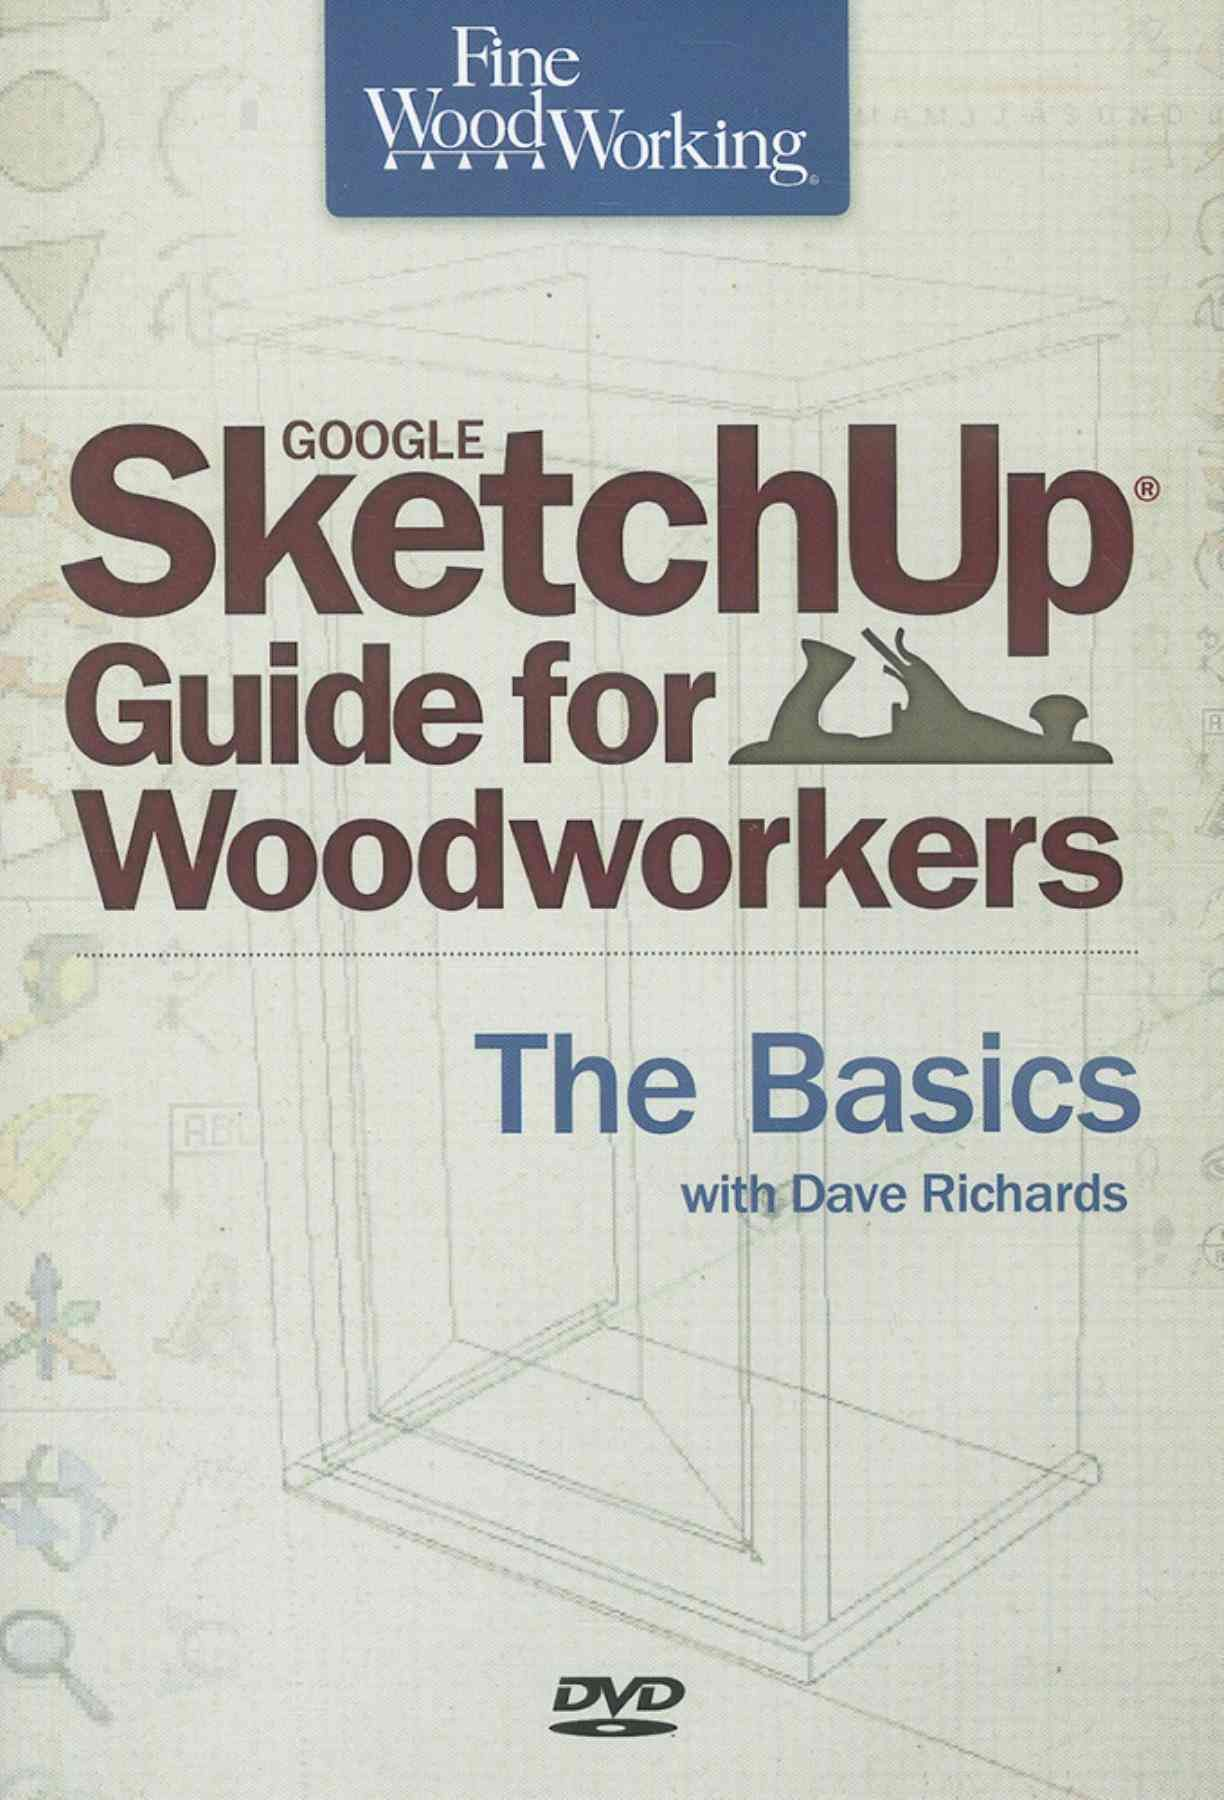 Fine Woodworking Google Sketchup For Woodworkers The Basics